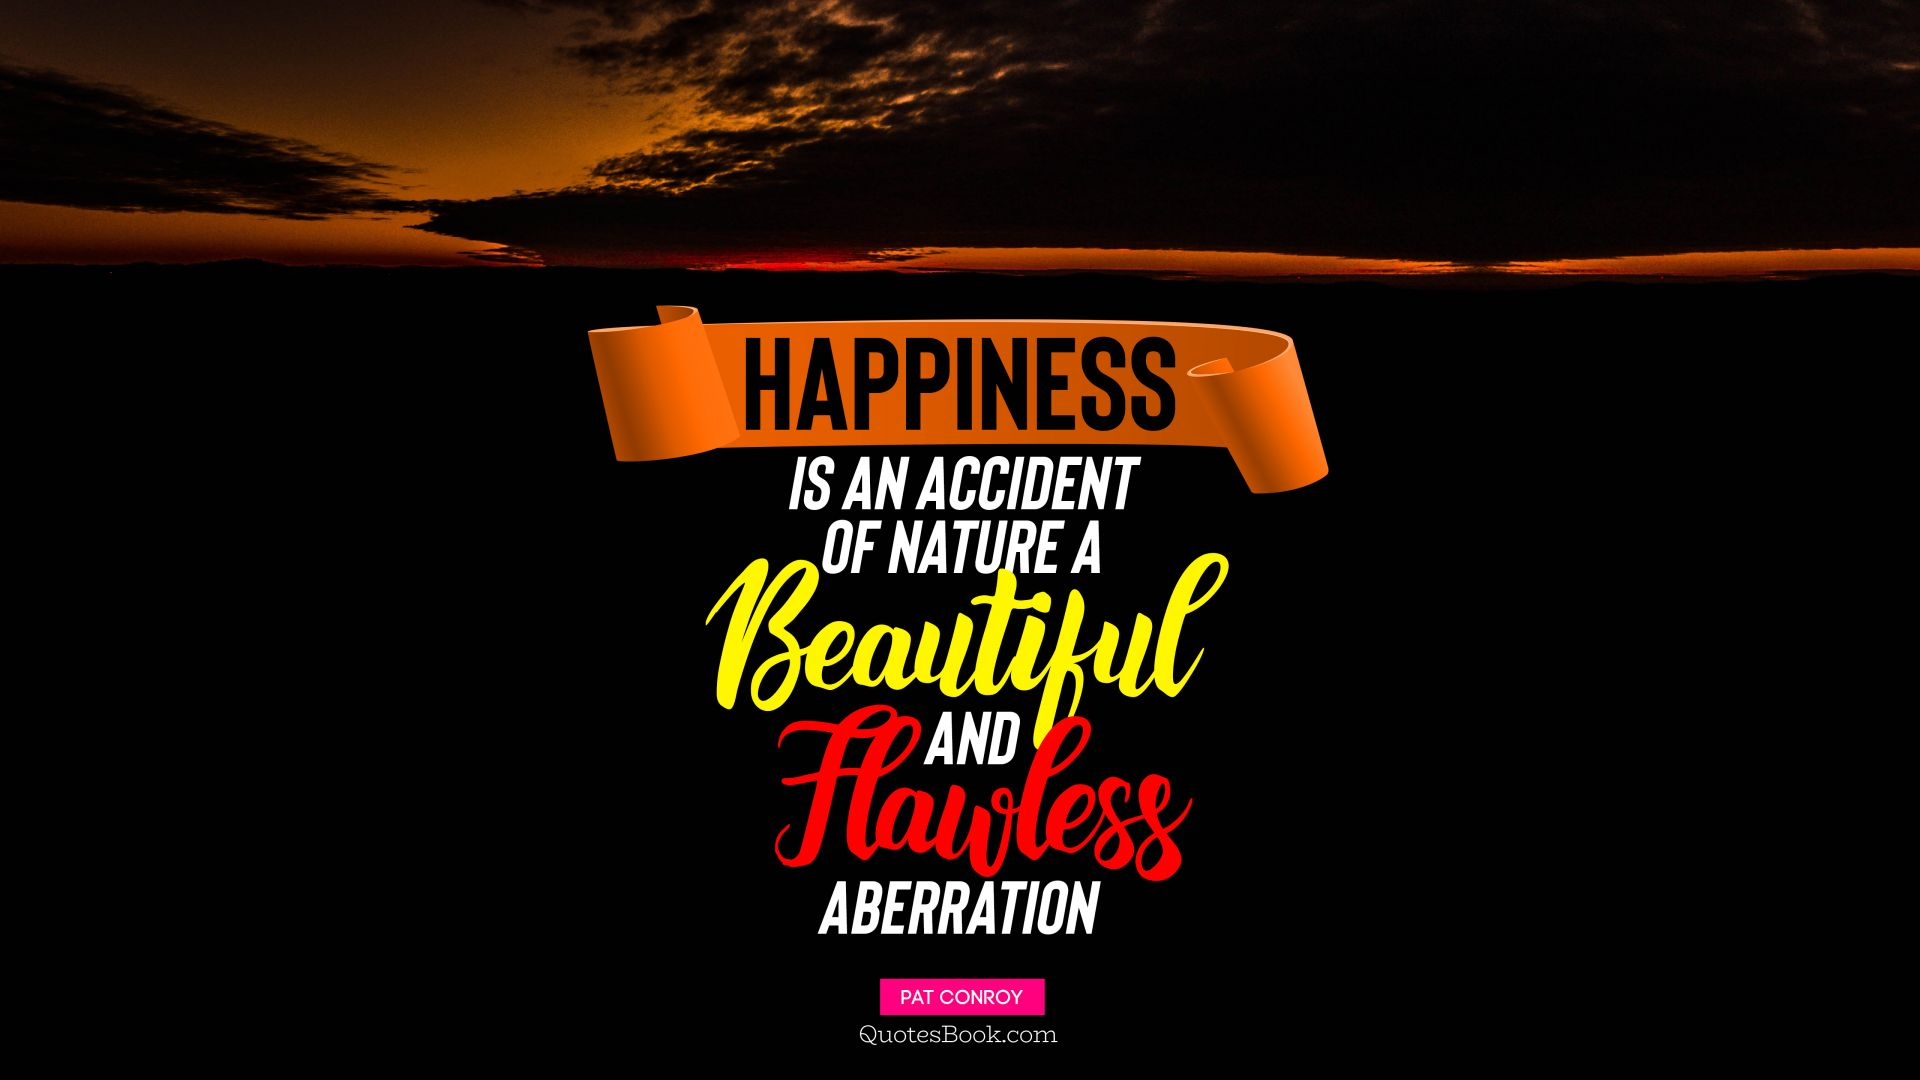 Happiness is an accident of nature, a beautiful and flawless aberration. - Quote by Pat Conroy